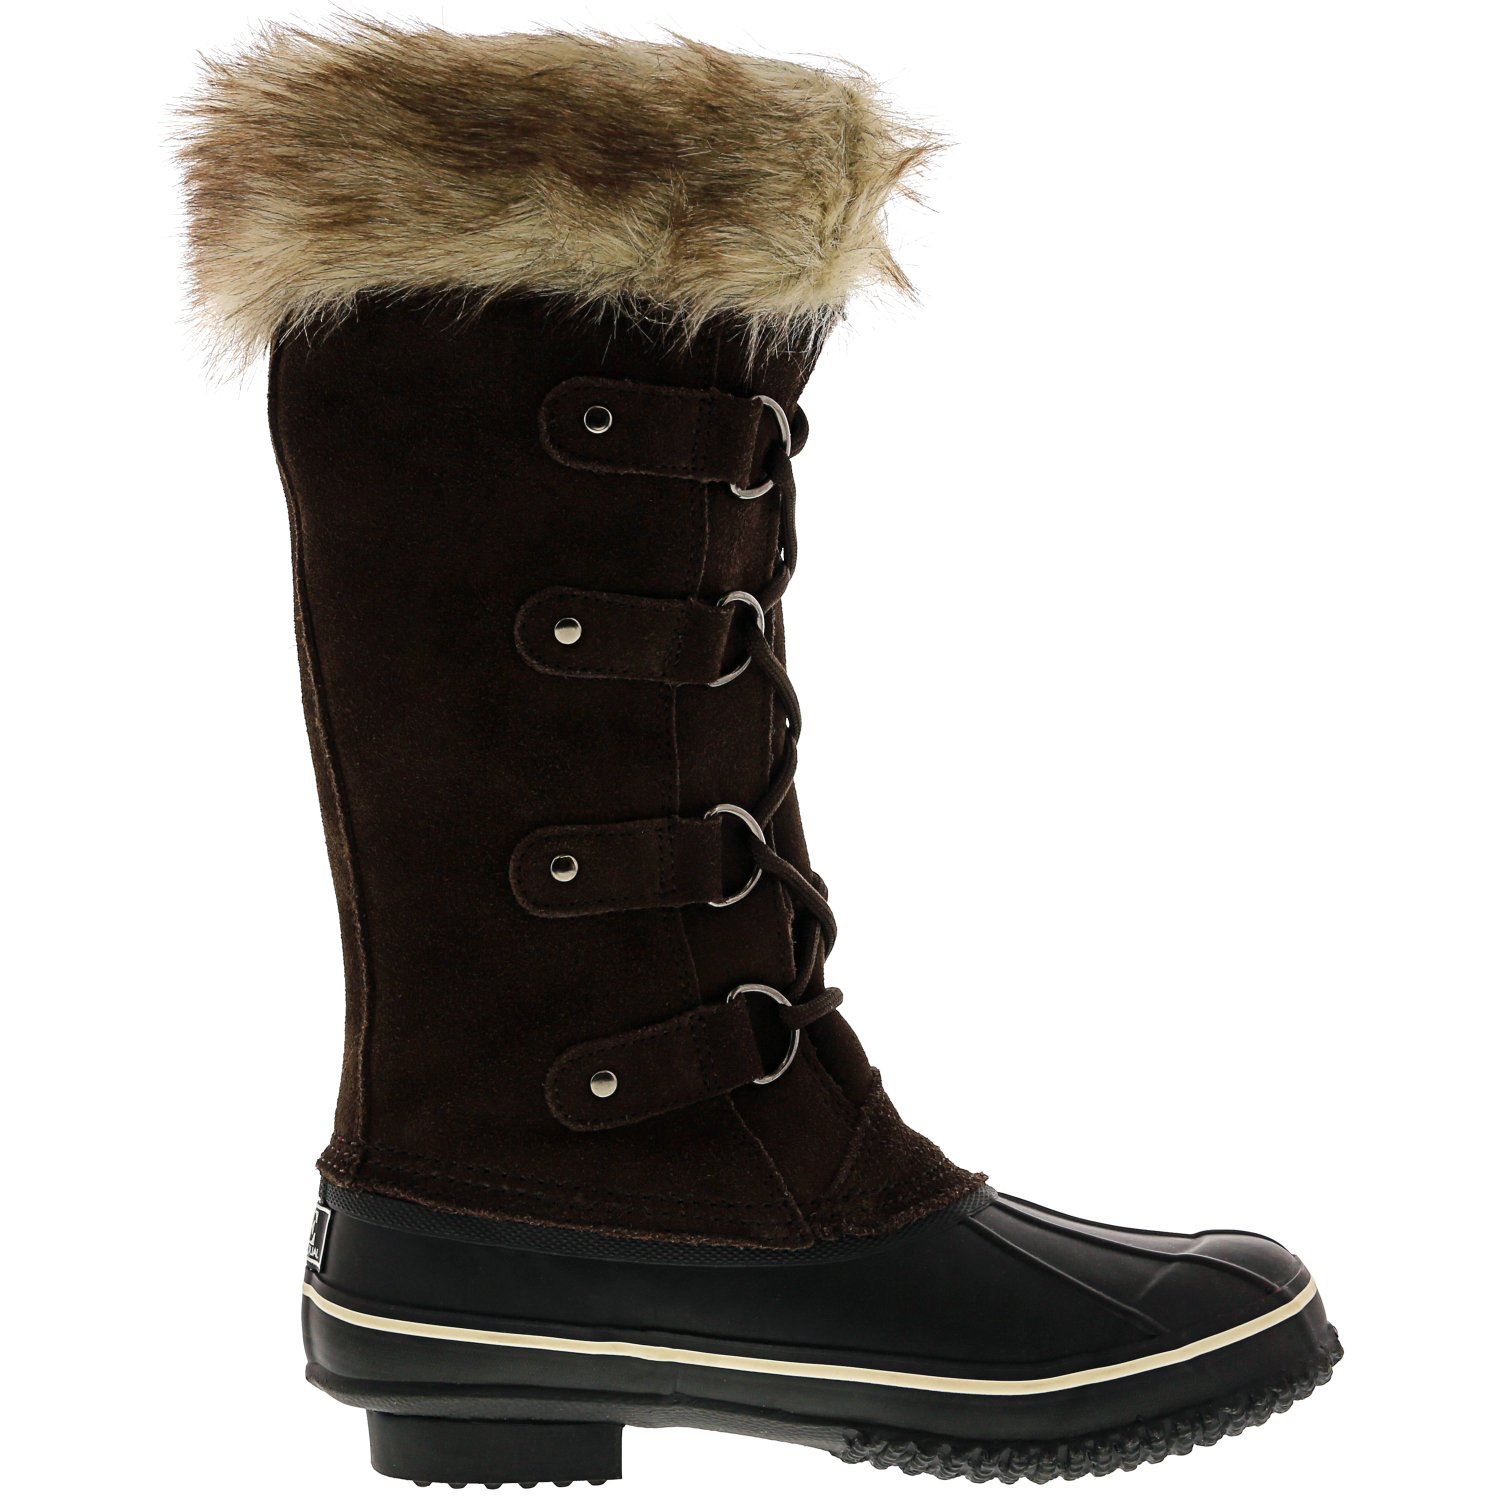 Kreated-Equal-Faux-Fur-Women-039-s-Tall-Arctic-Winter-Boots thumbnail 14